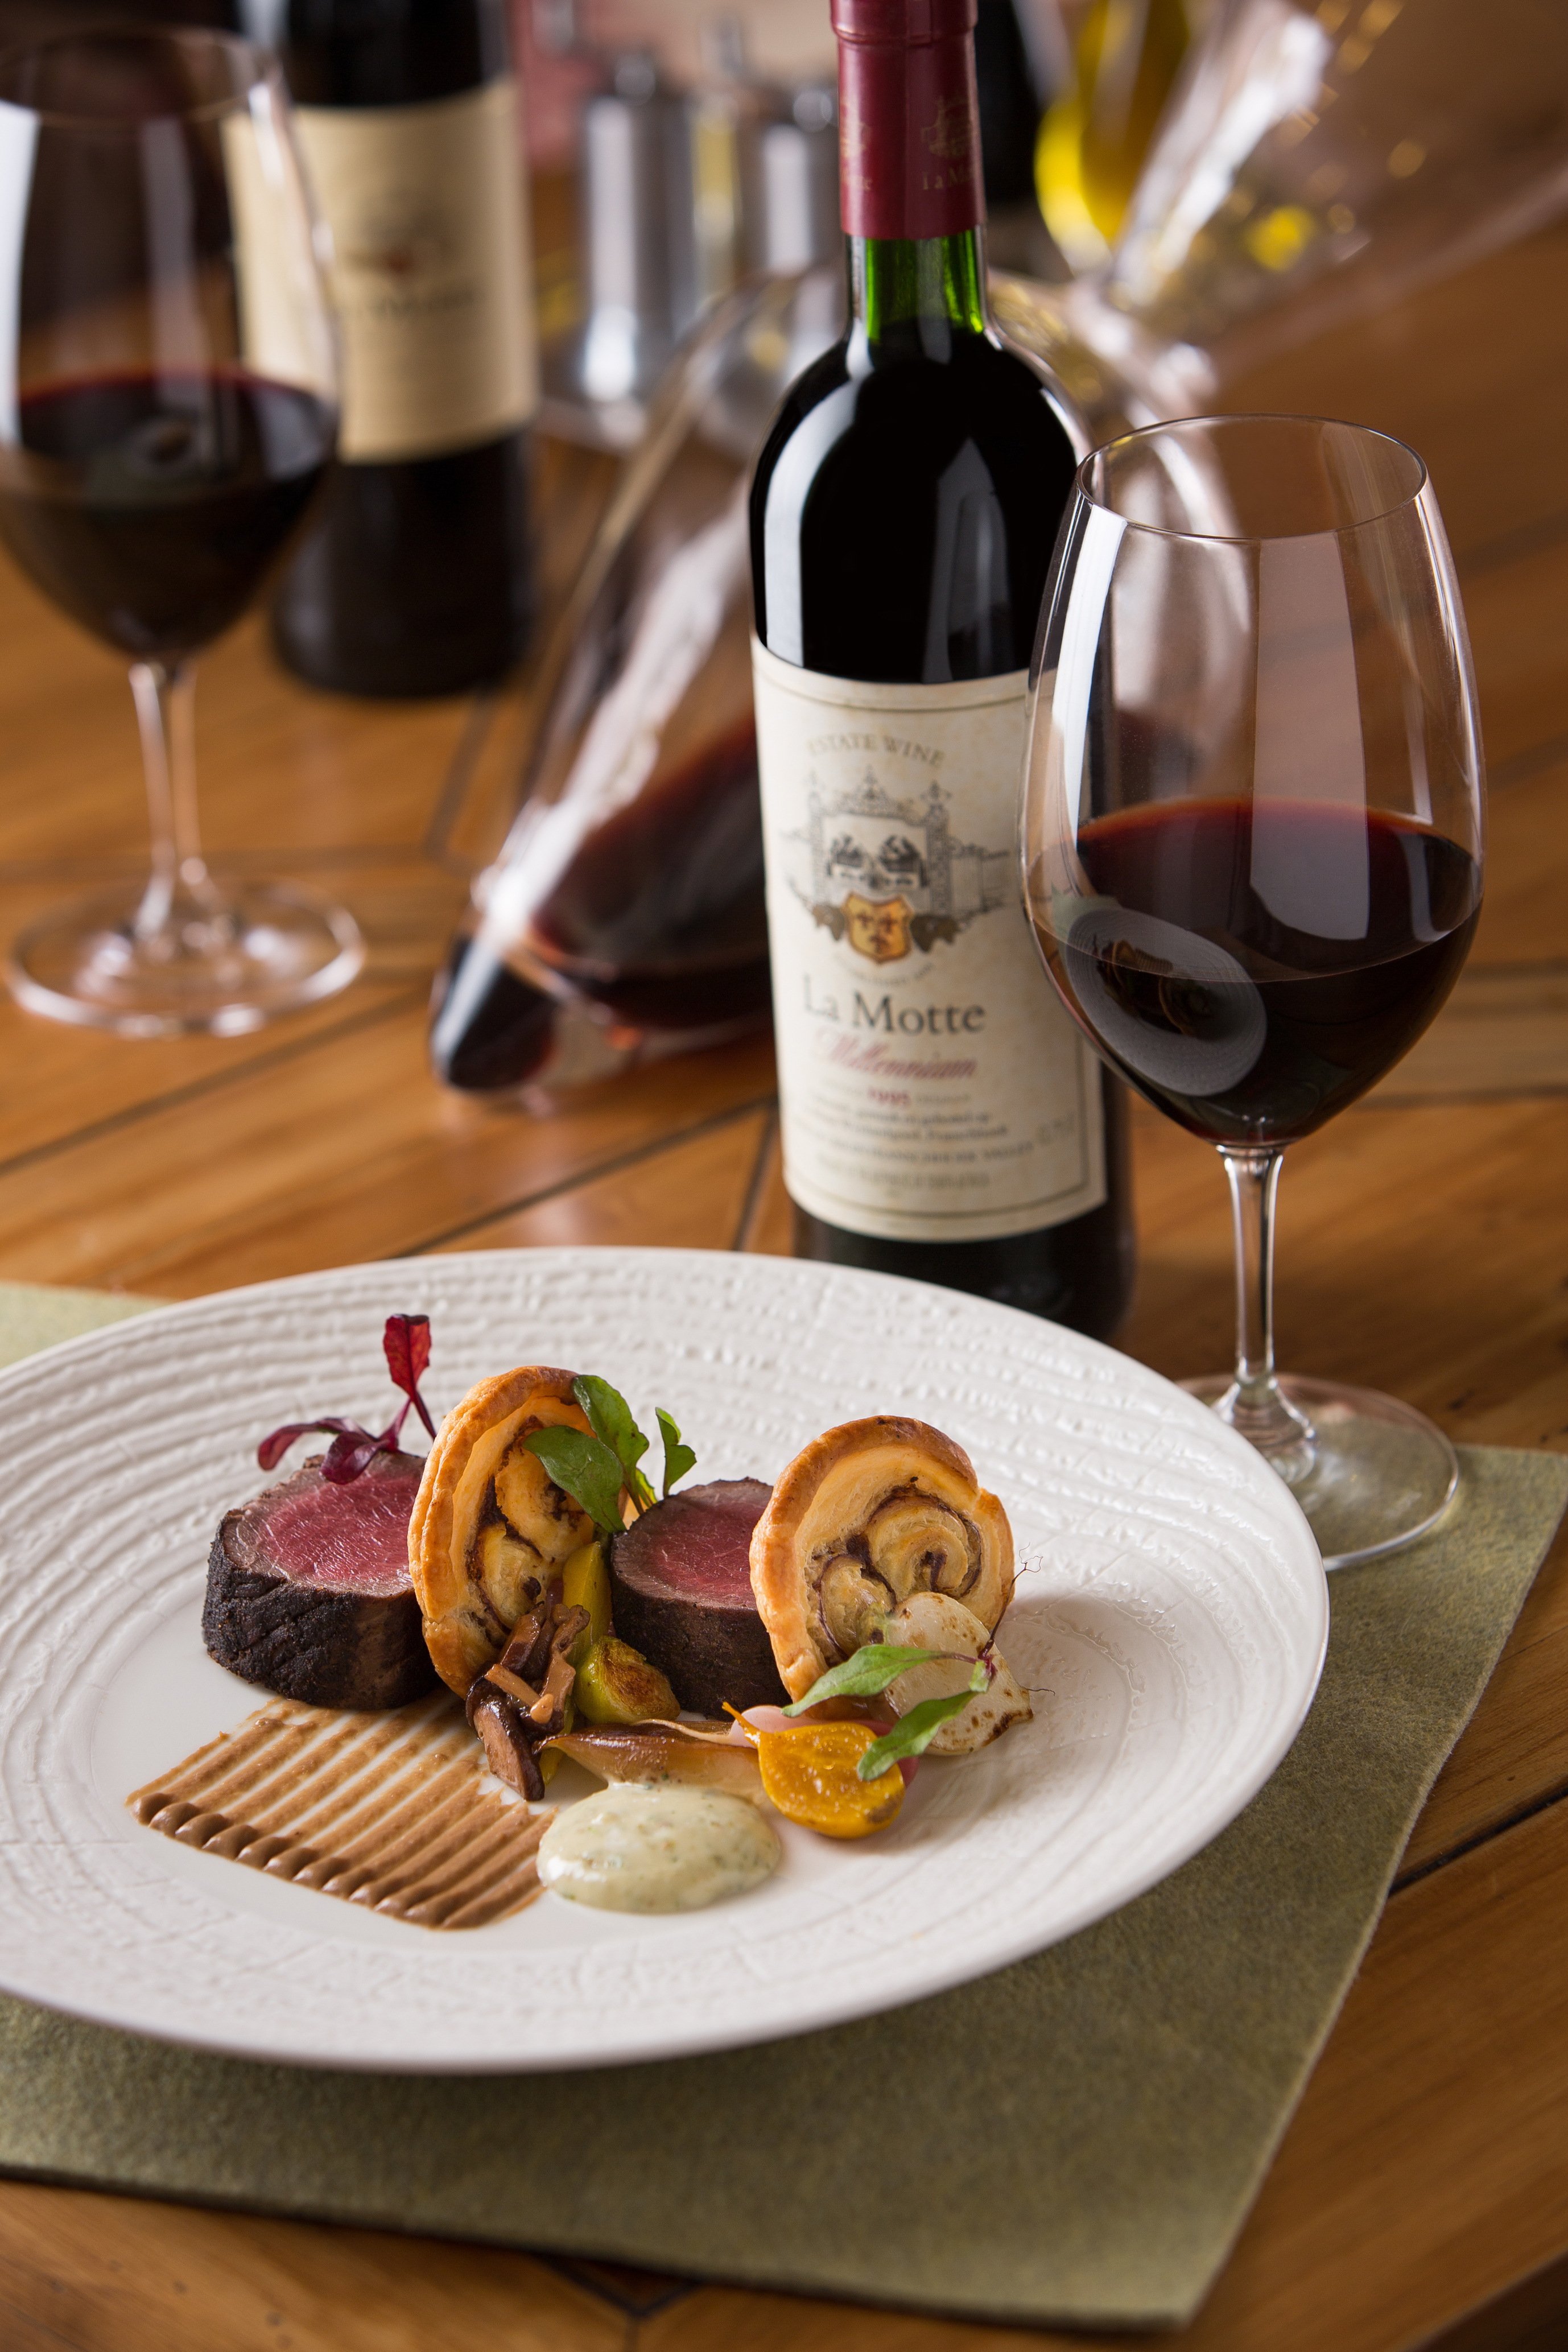 97701327e29 La Motte presents  An evening of vintage wine and venison with ...